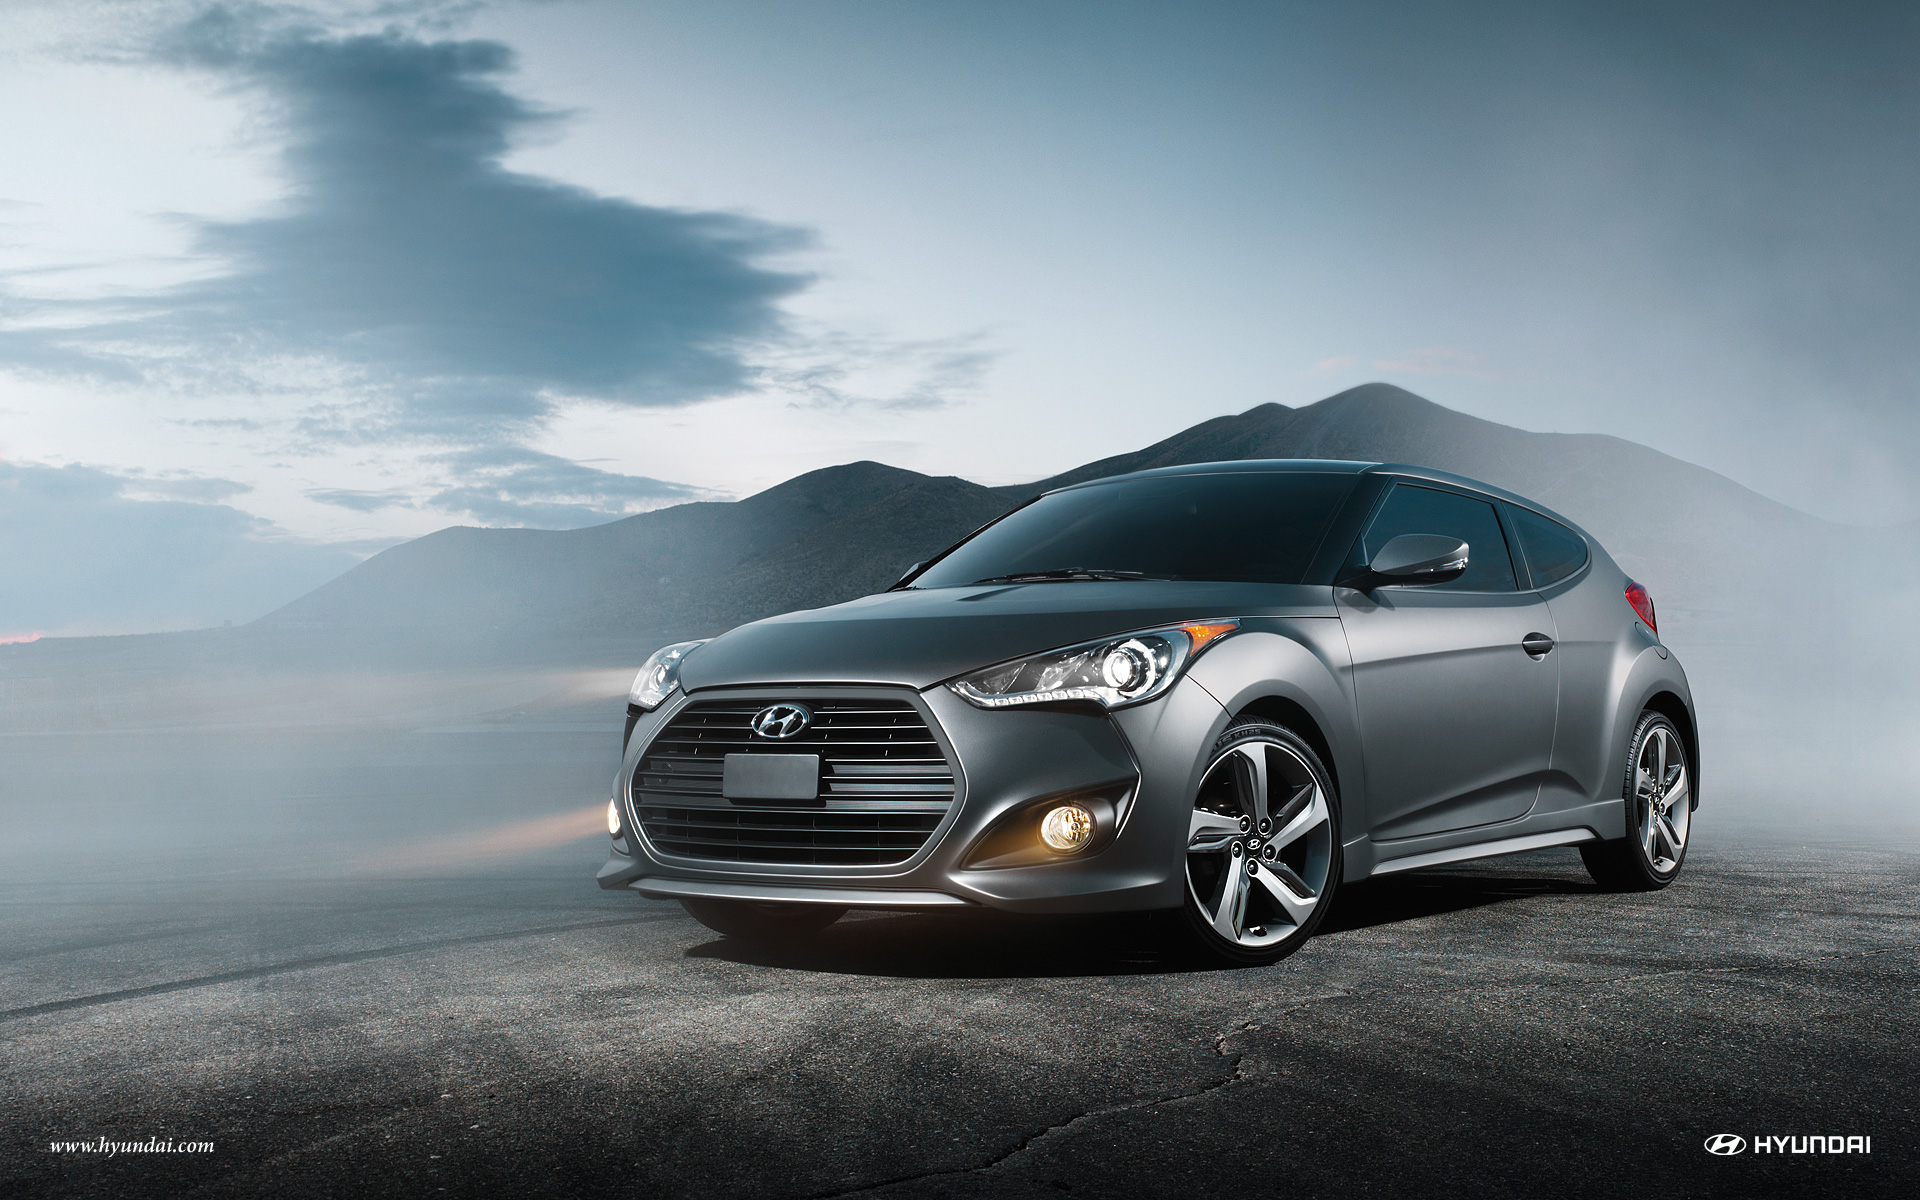 2014 hyundai veloster technical specifications and data engine dimensions and mechanical. Black Bedroom Furniture Sets. Home Design Ideas